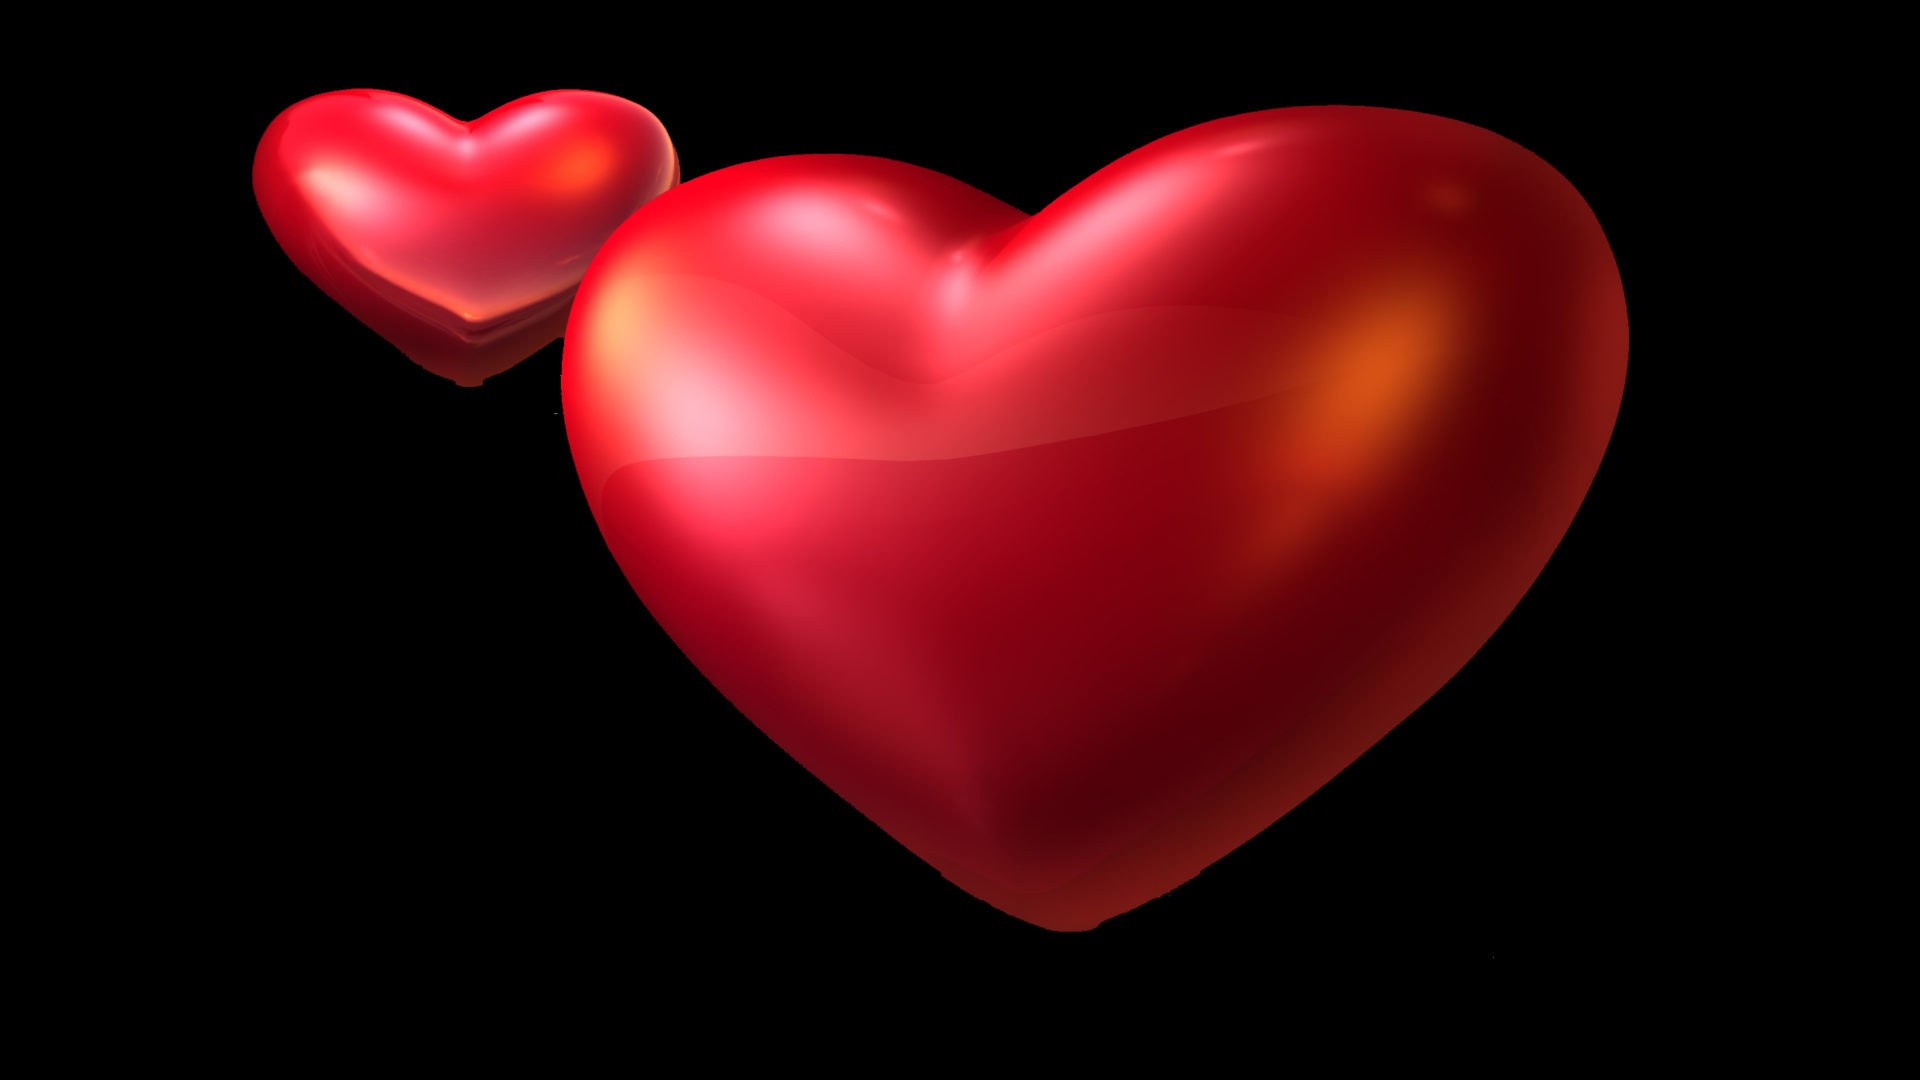 Cars Wallpapers 2014 Hd Download Big Red Hearts Love Valentines Day 6813 Wallpapers13 Com